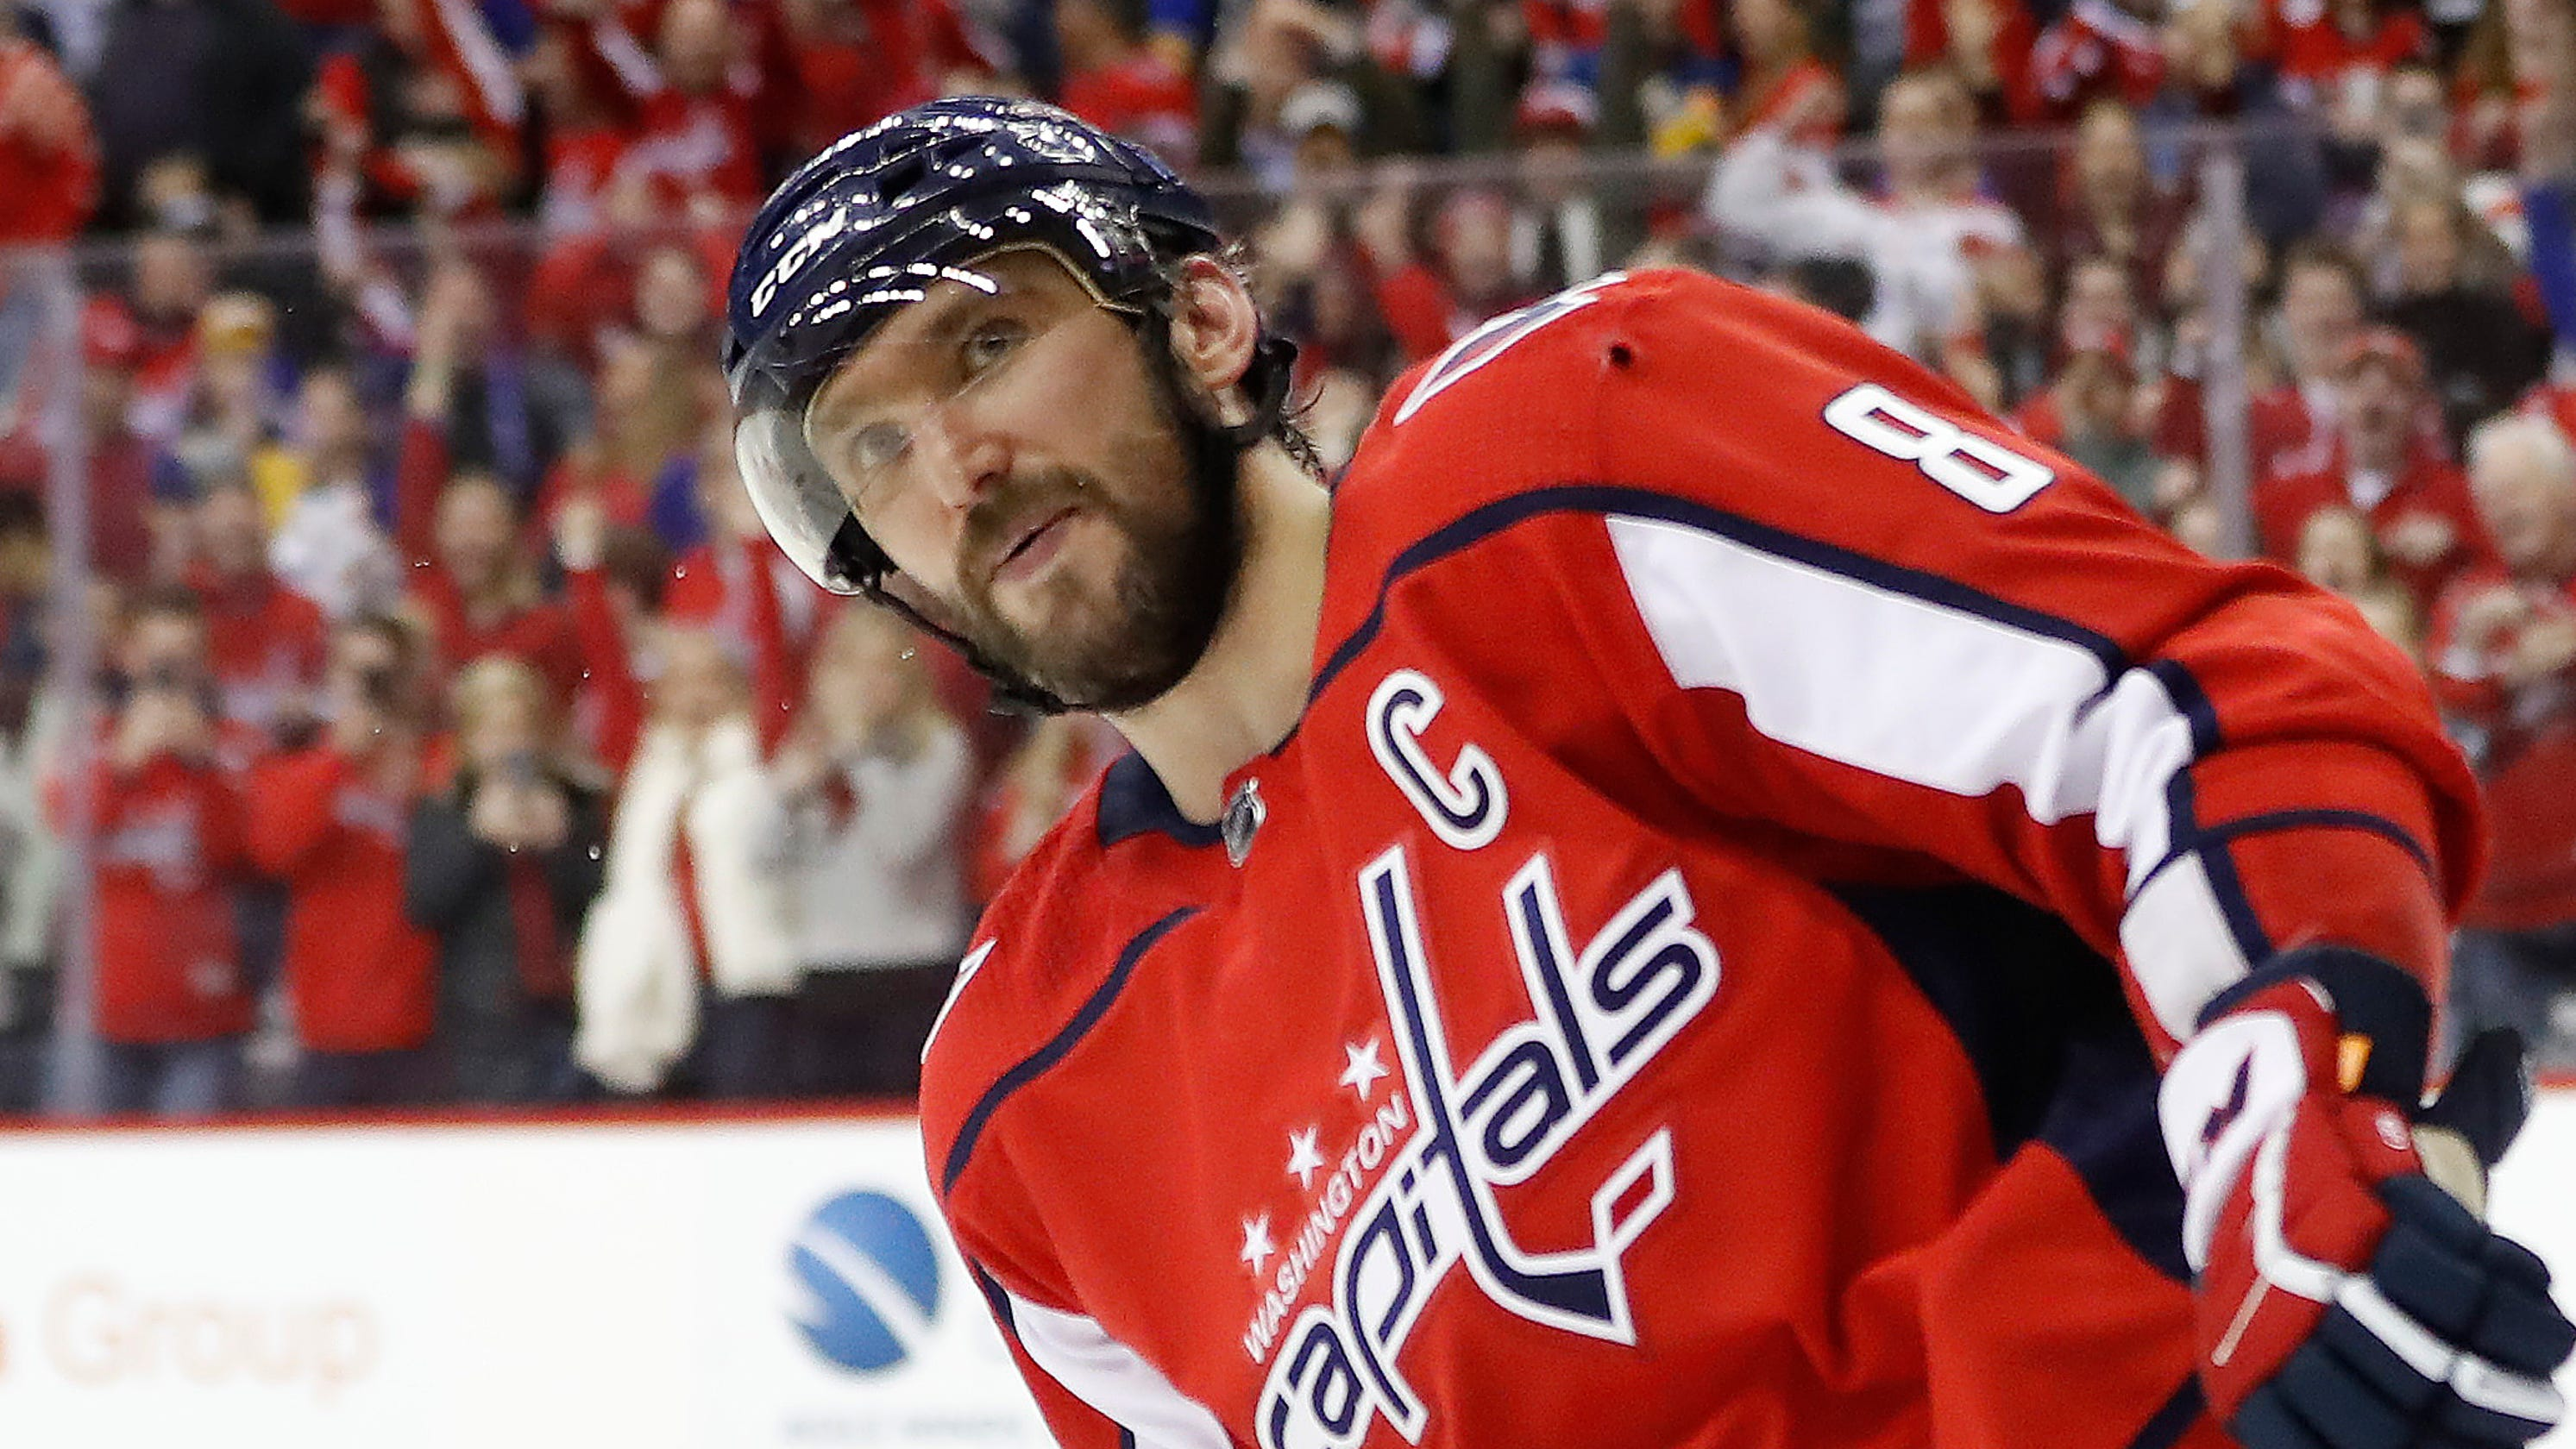 4b2ef34241e Alex Ovechkin, Capitals star, to skip NHL All-Star Game, take penalty